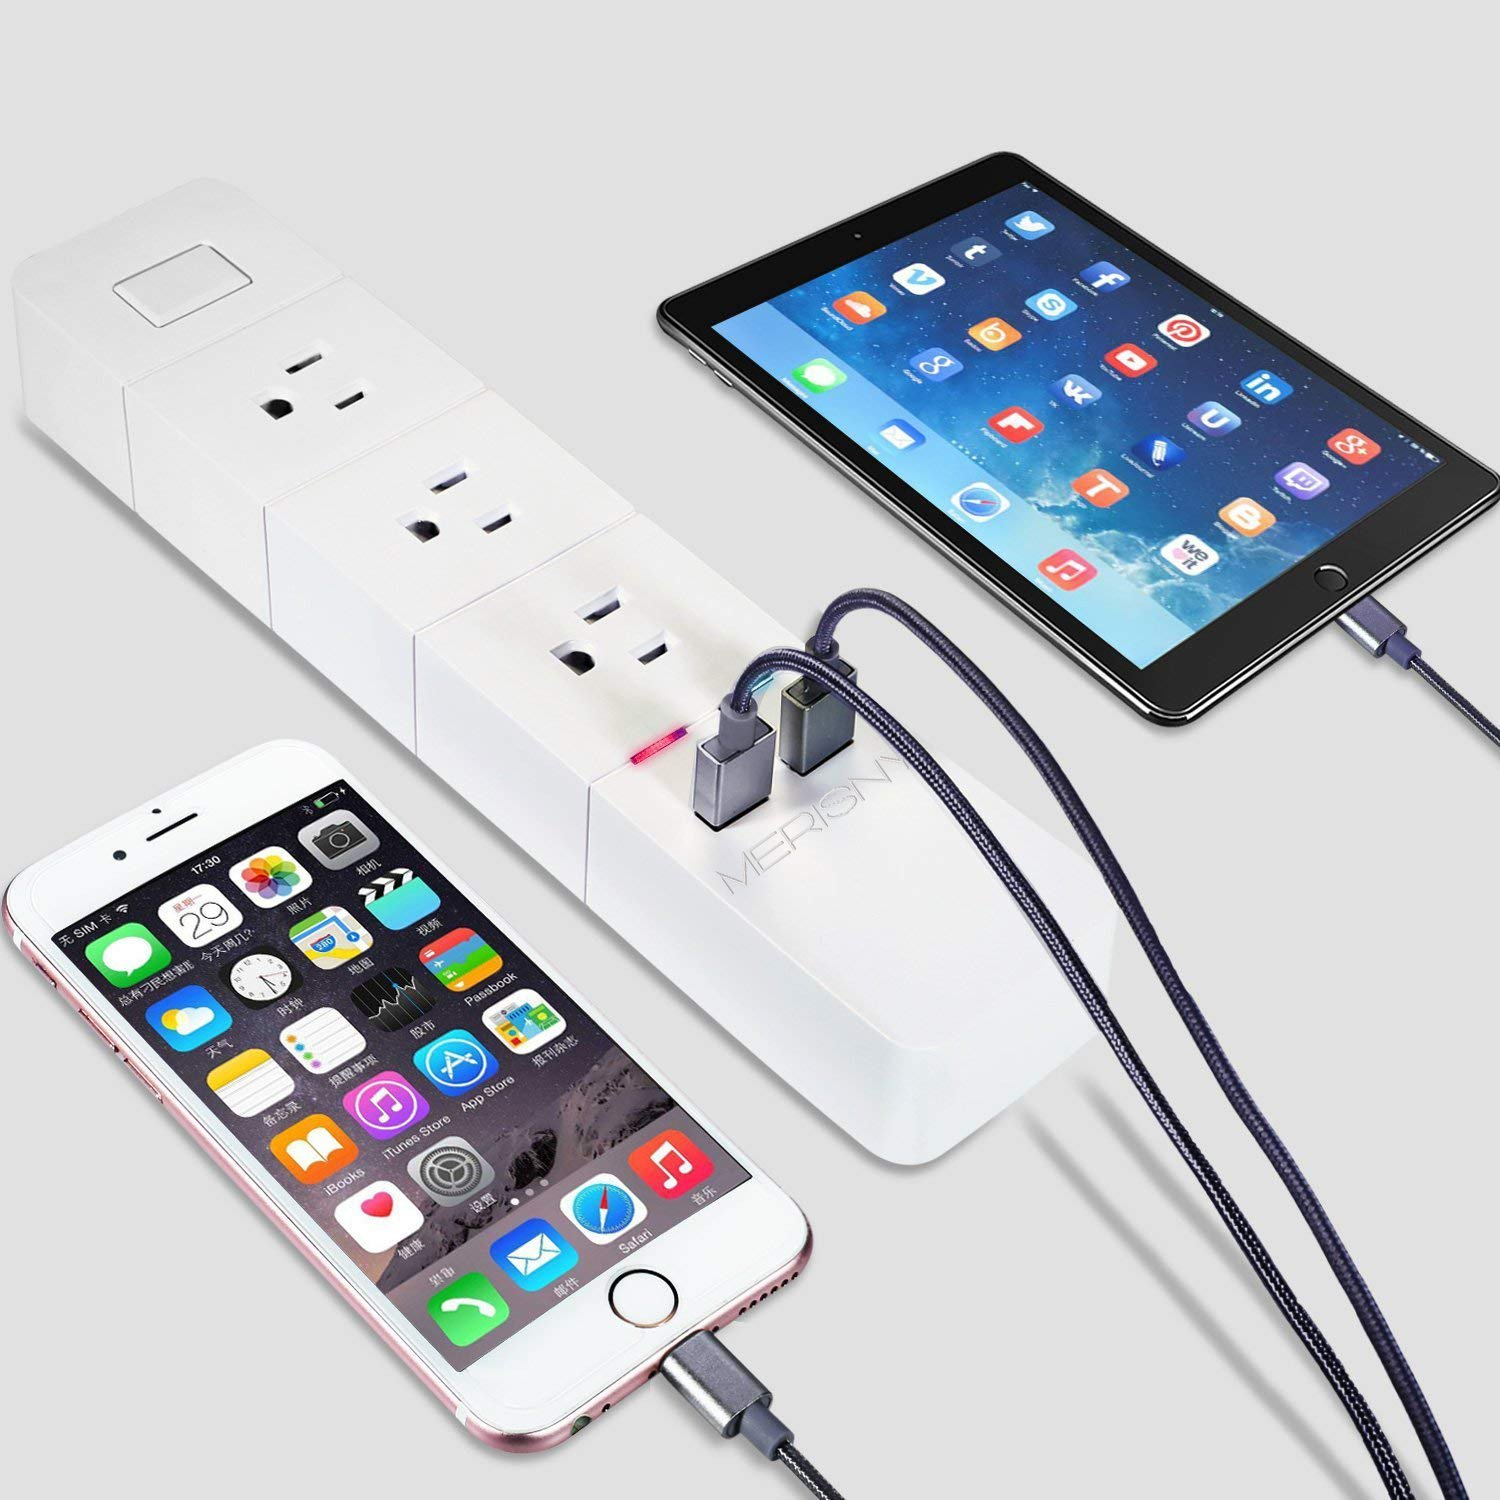 Merisny WiFi Power Strip Smart Surge Protector with Individual Control - Works with Alexa Google Home - Smart Surge Protector with USB - Remote Control by Smart Phone by Merisny (Image #3)